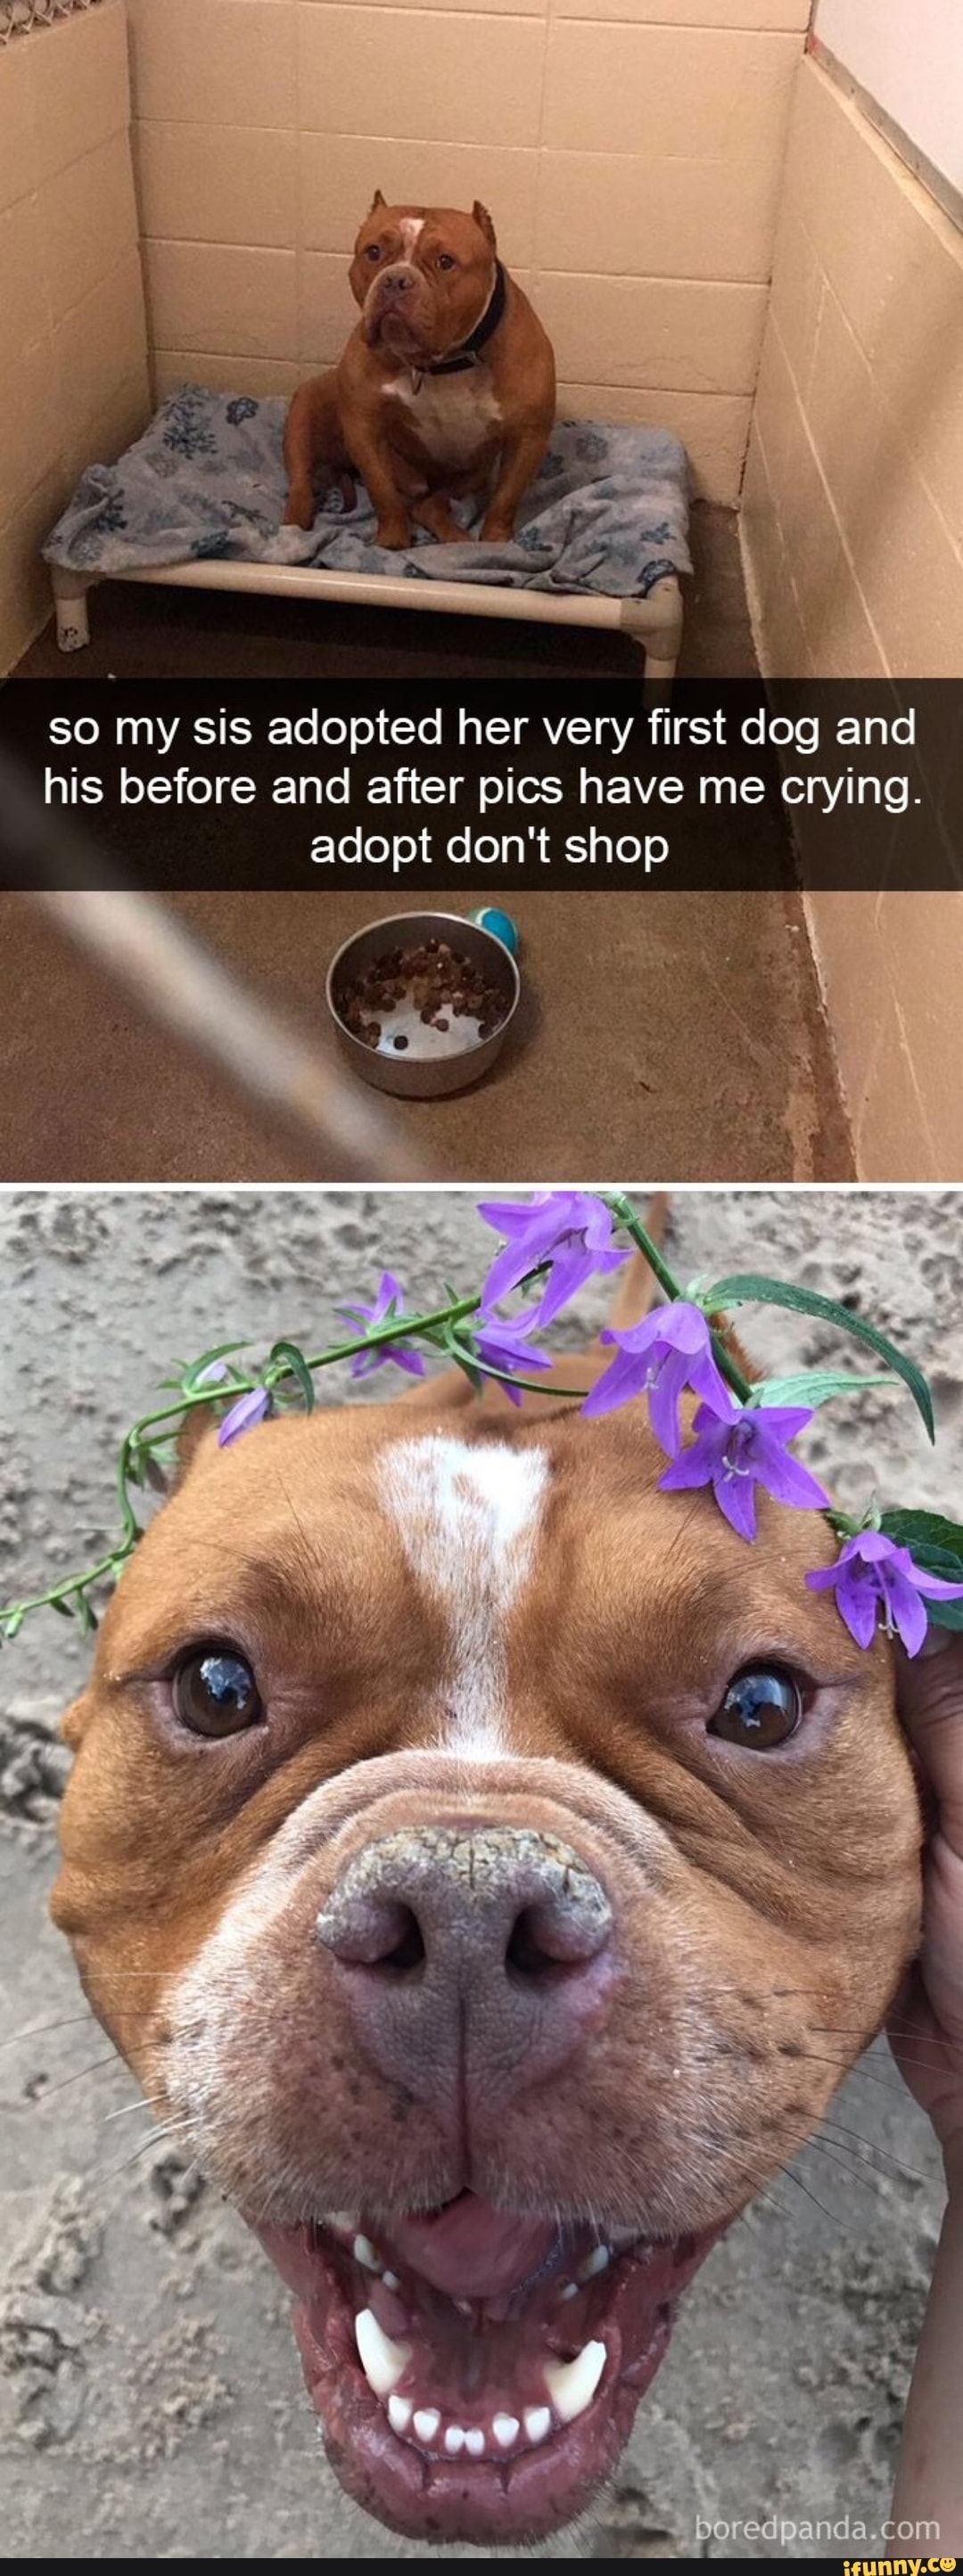 So my sis adopted her very first dog and his before and